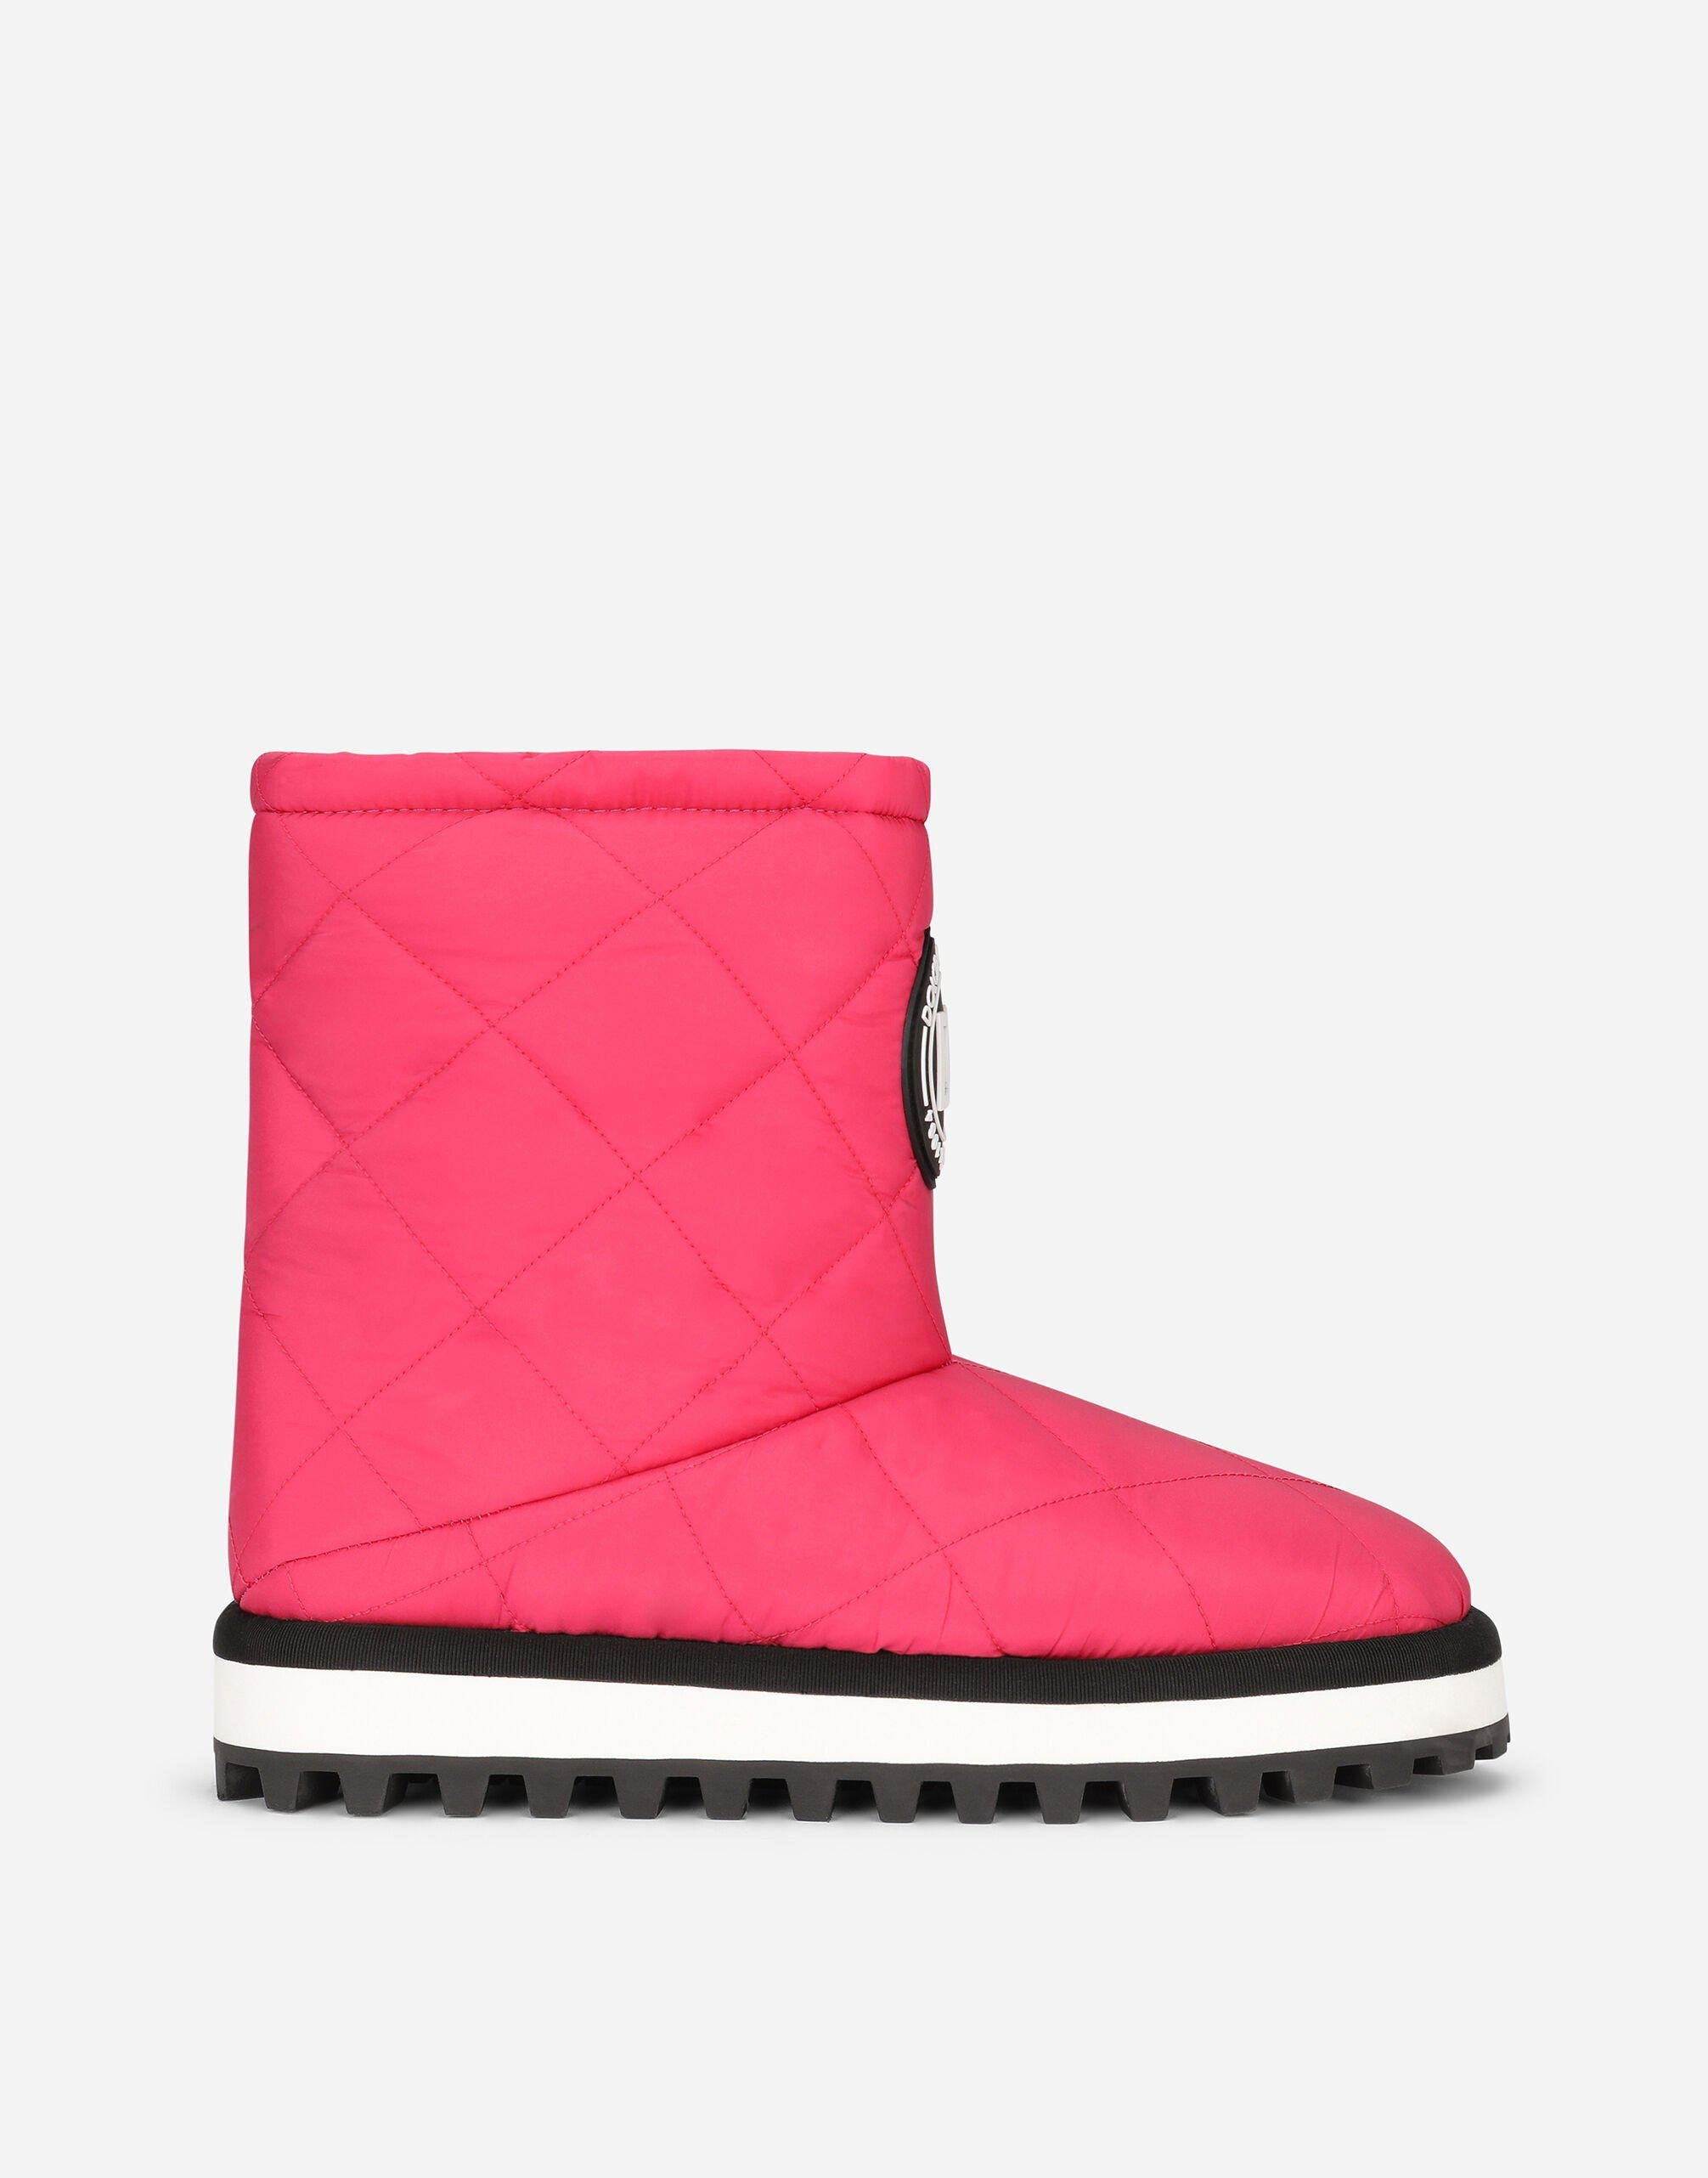 Nylon ankle boots with DG logo